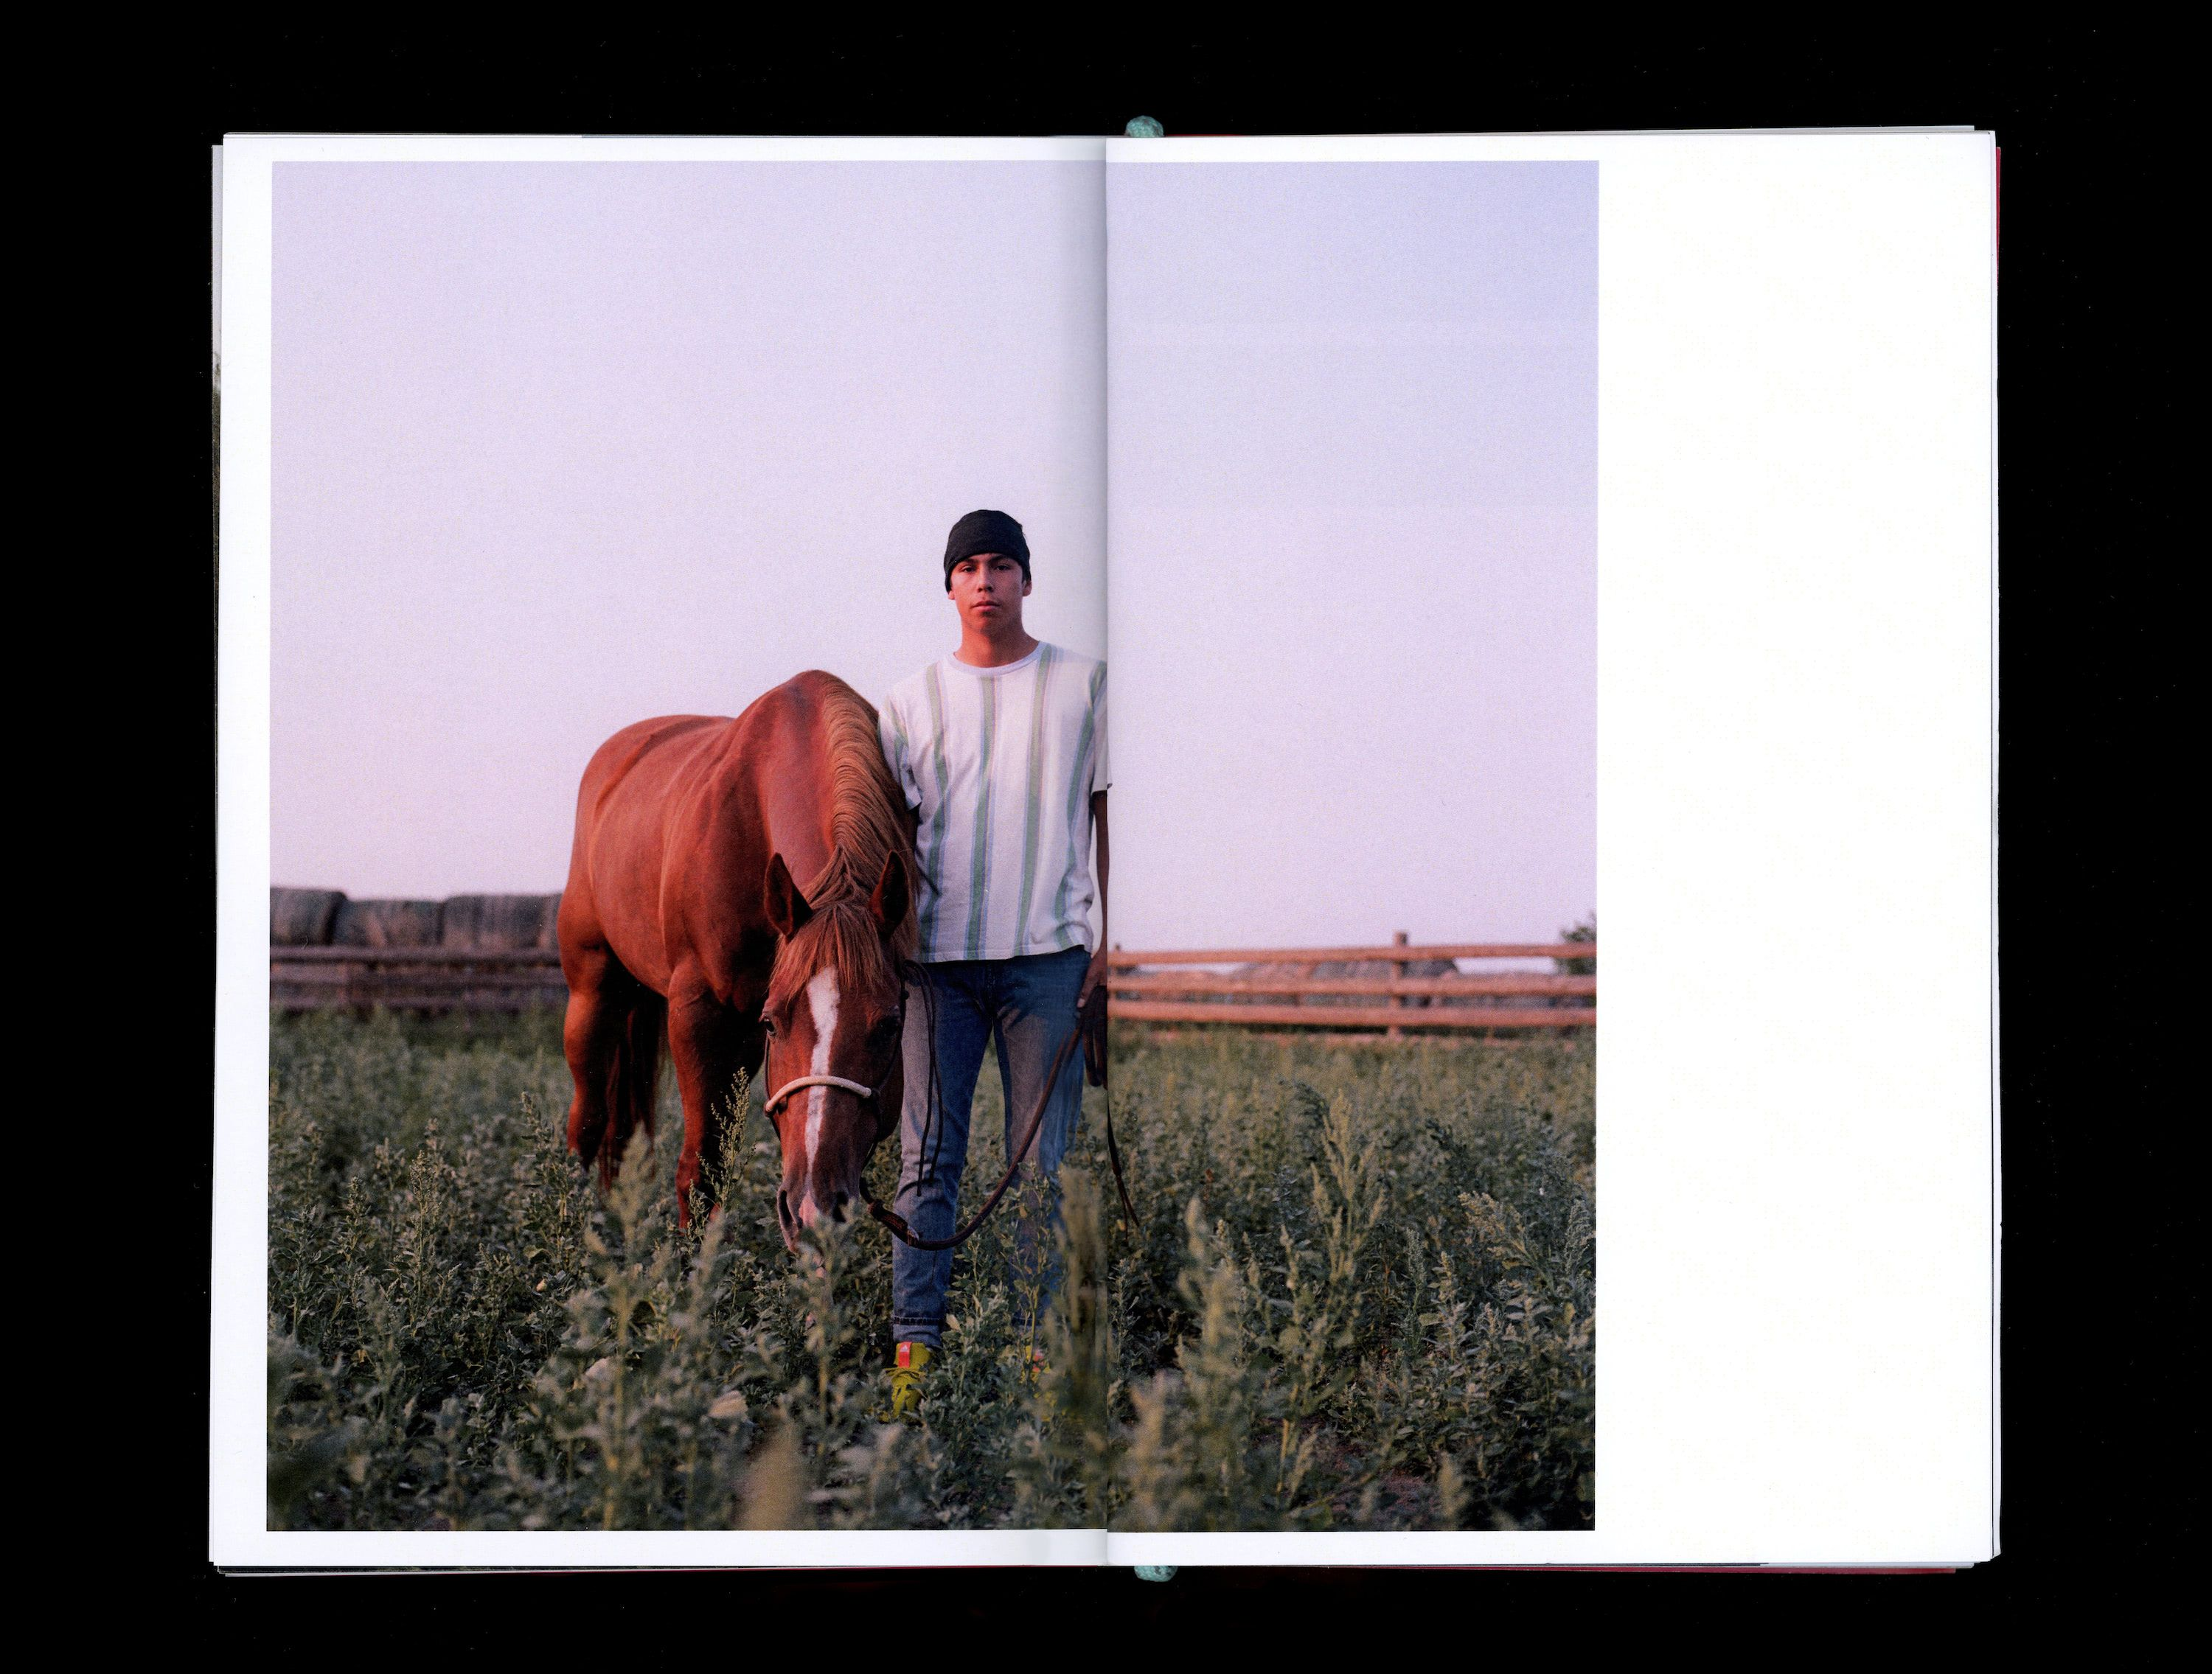 Photograph in book of Maize Two Bears standing in field with horse